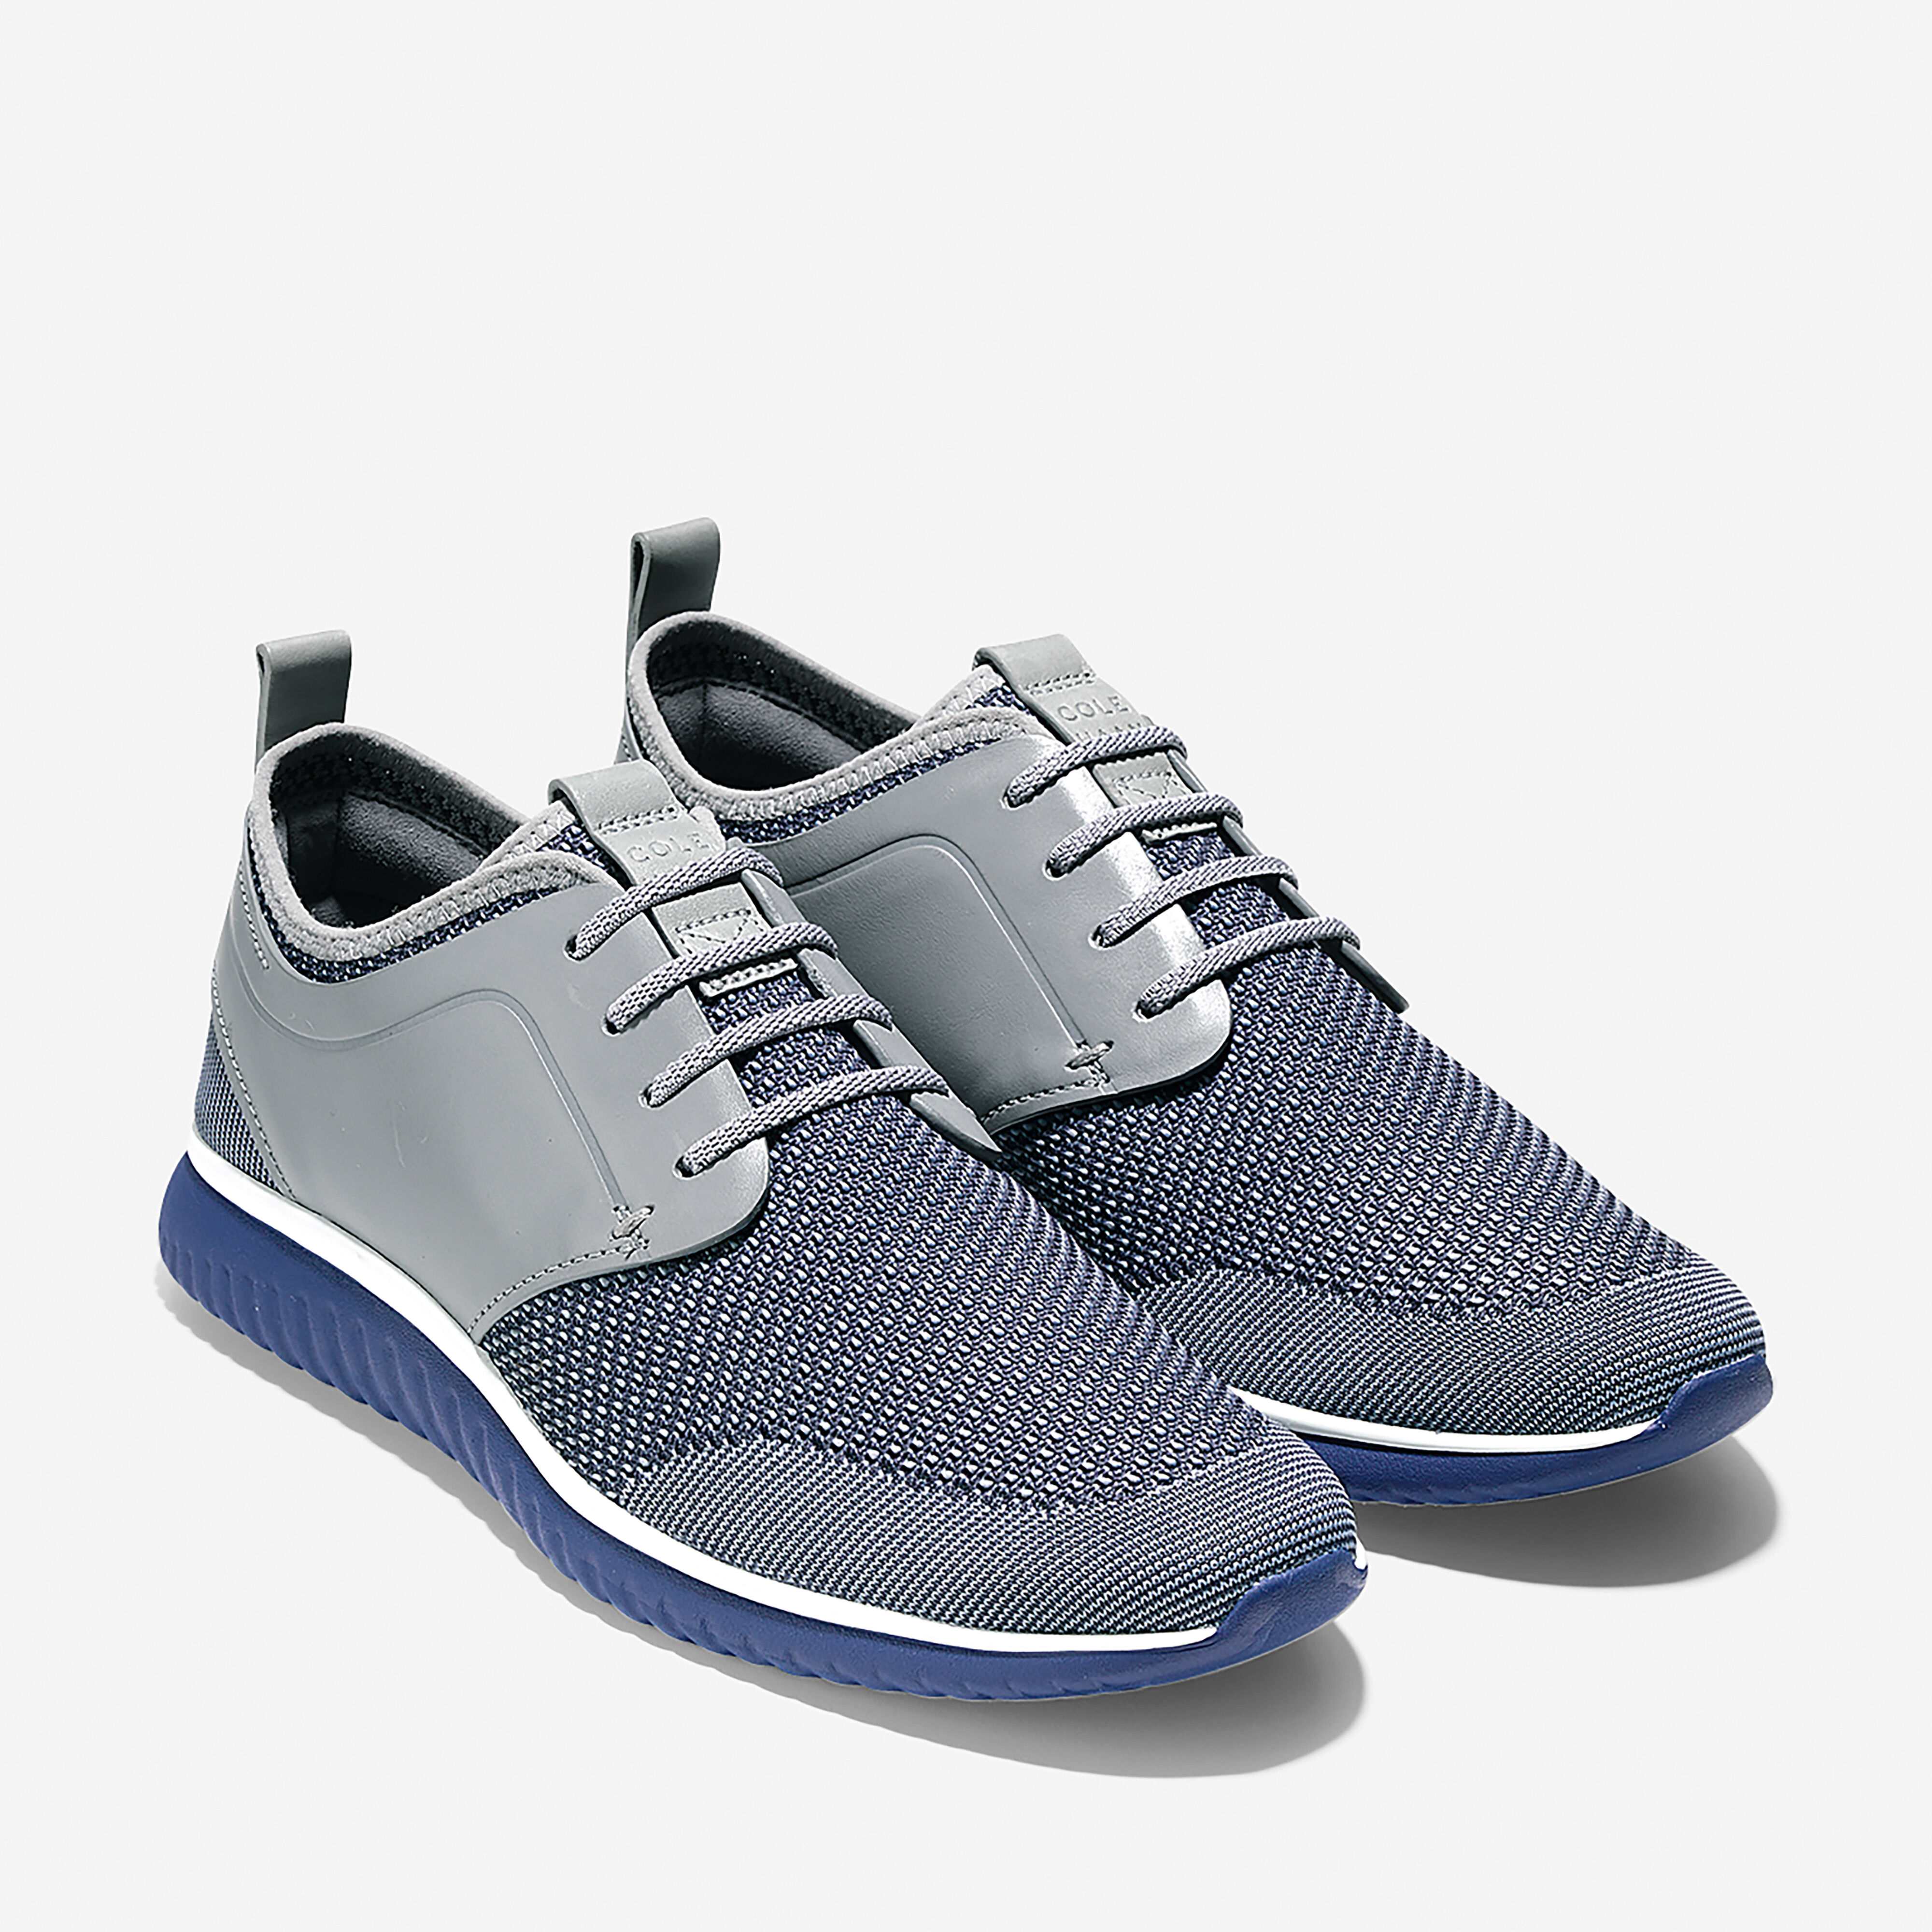 Grand Motion Knit Cole Haan As68XM